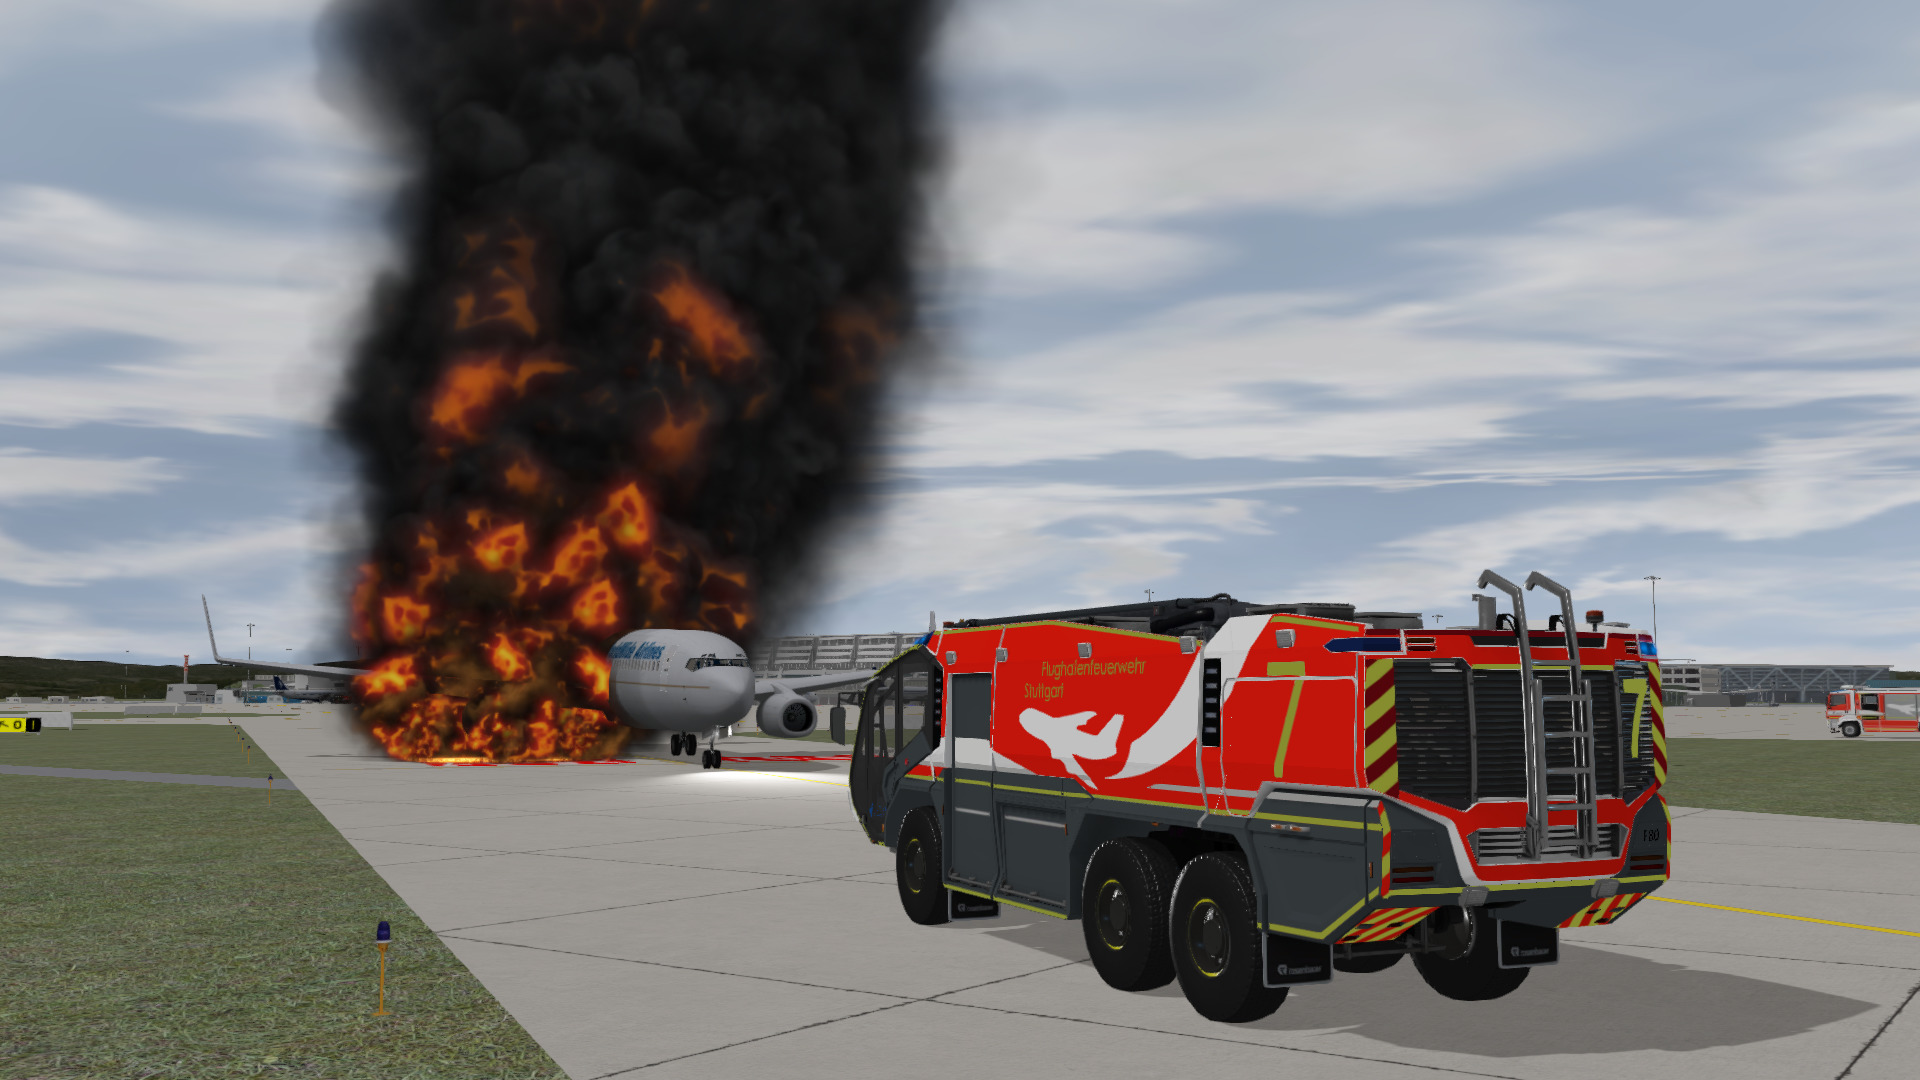 Rosenbauer Panther ARFF Truck responding to a massive fuel fire underneath a 737, inside the training system.